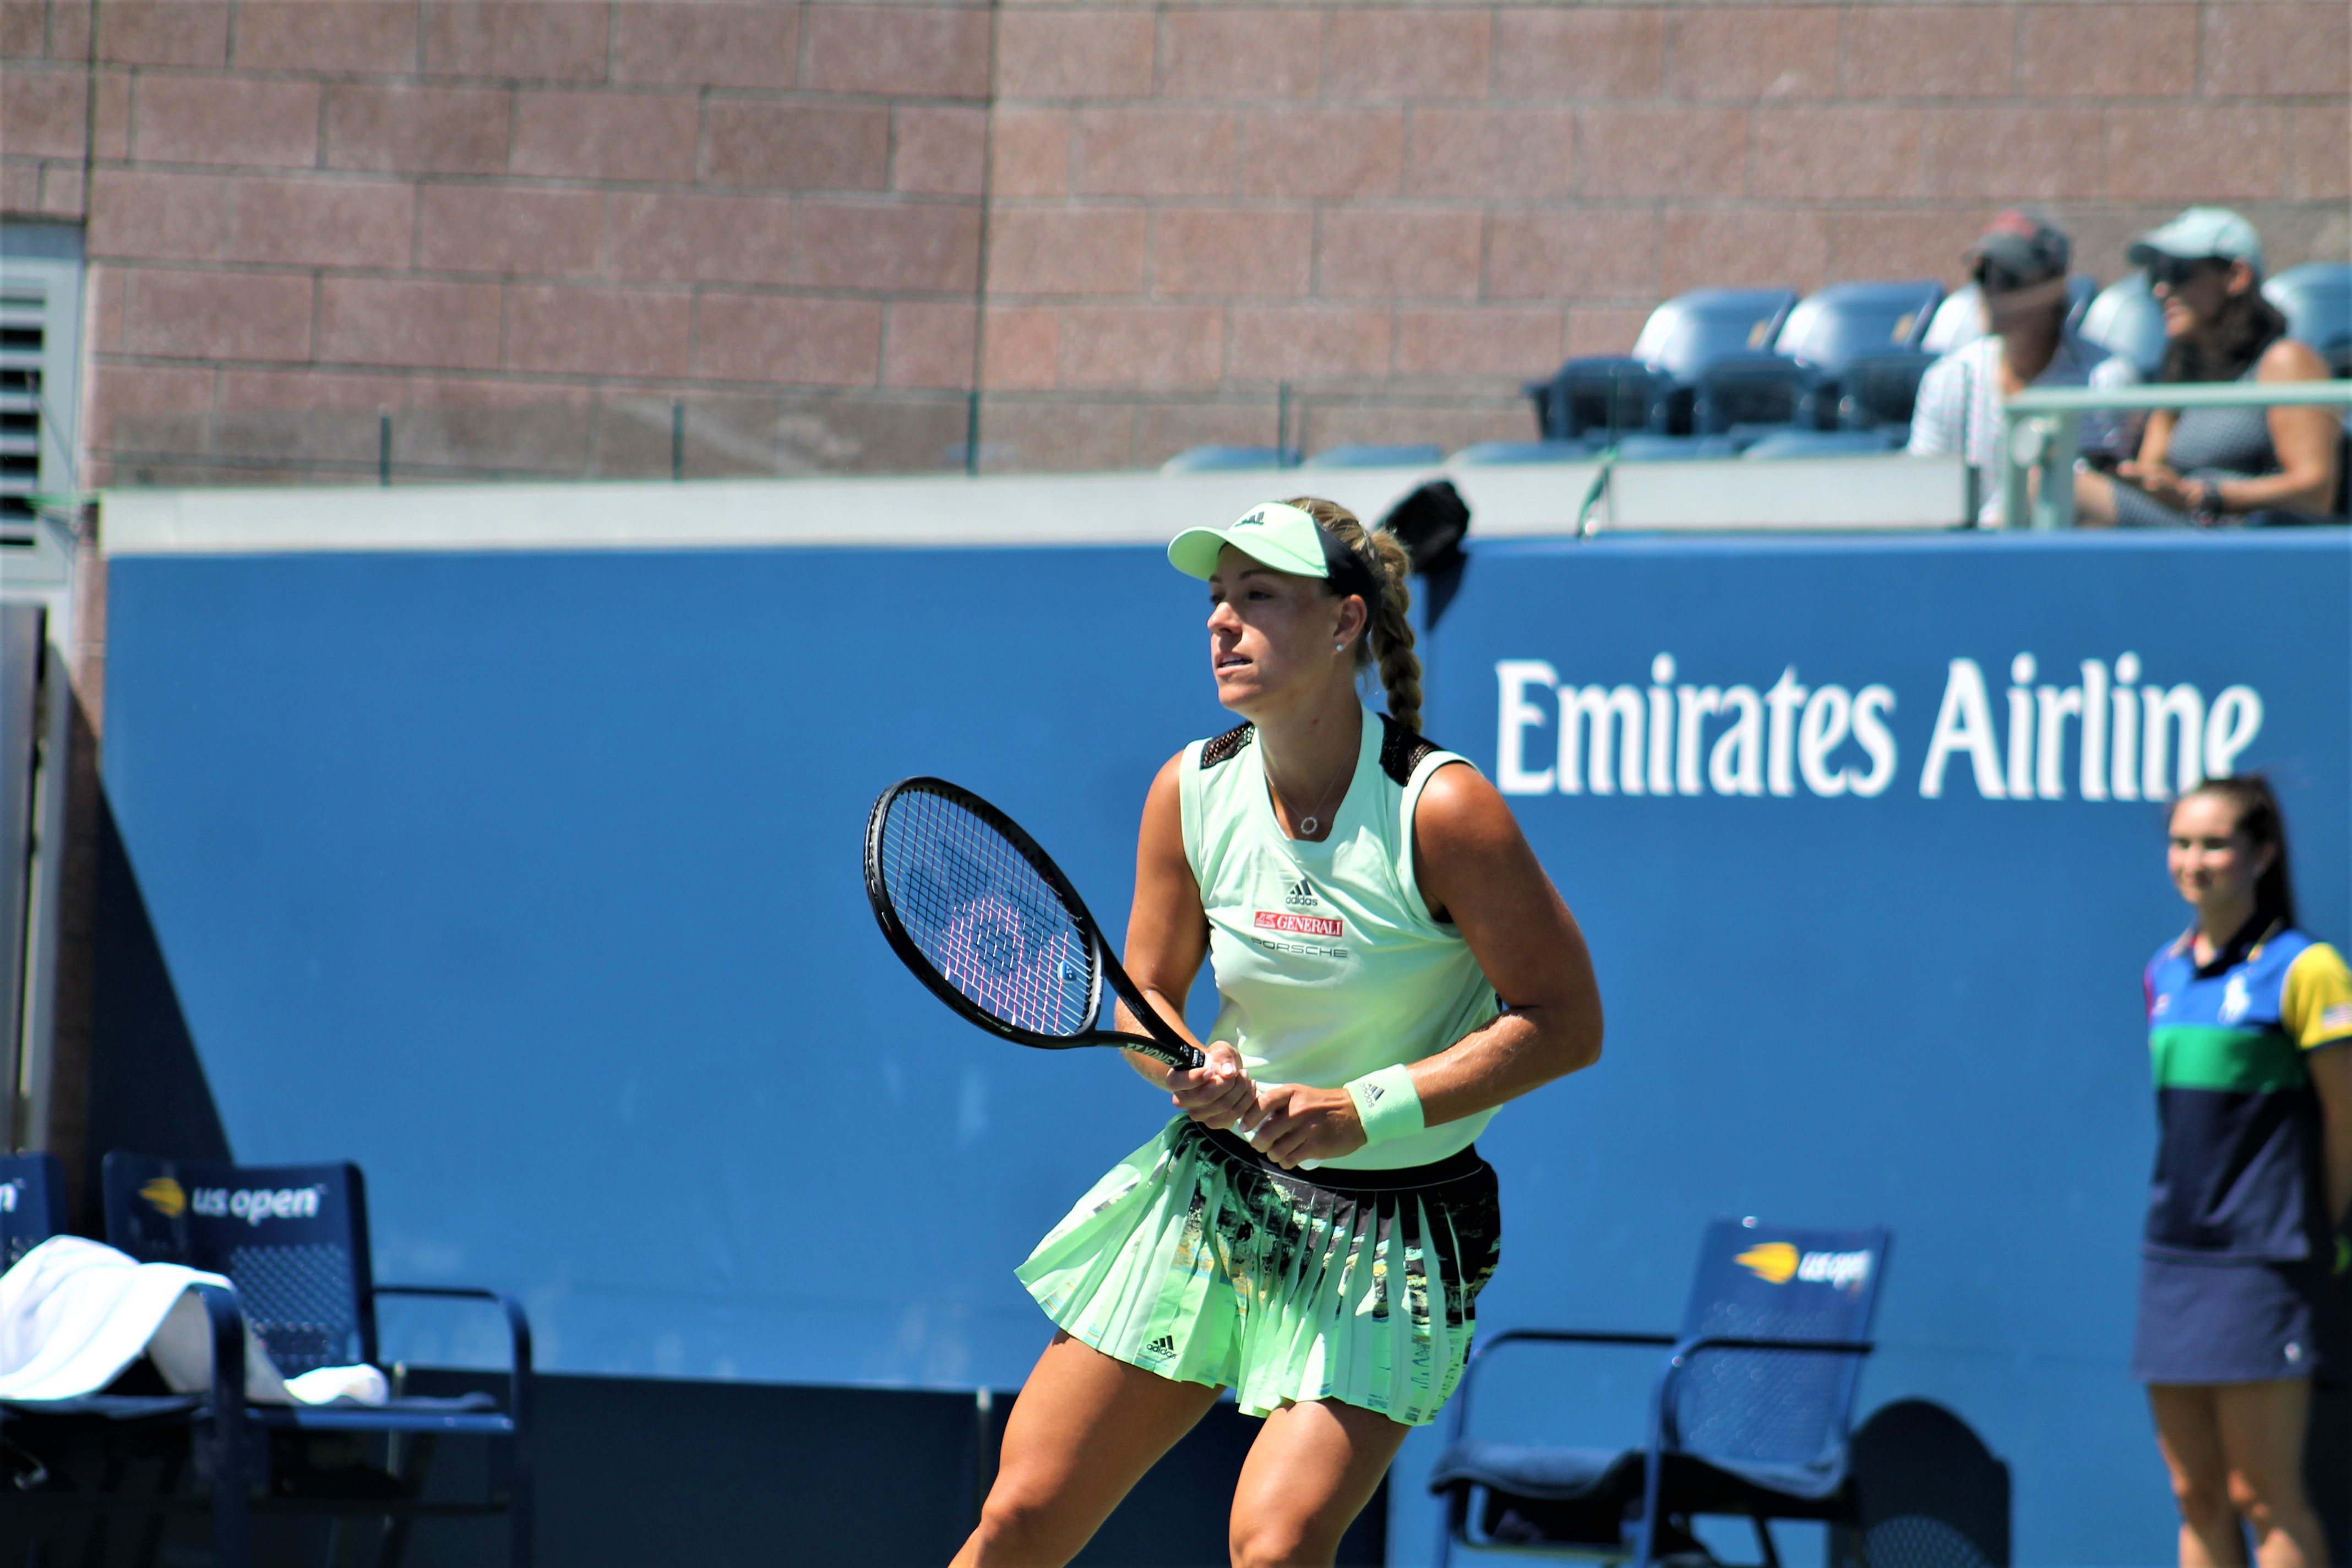 The 14th seed and former champion Angelique Kerber at the US Open on Monday, falling to France's Kristina Mladenovic